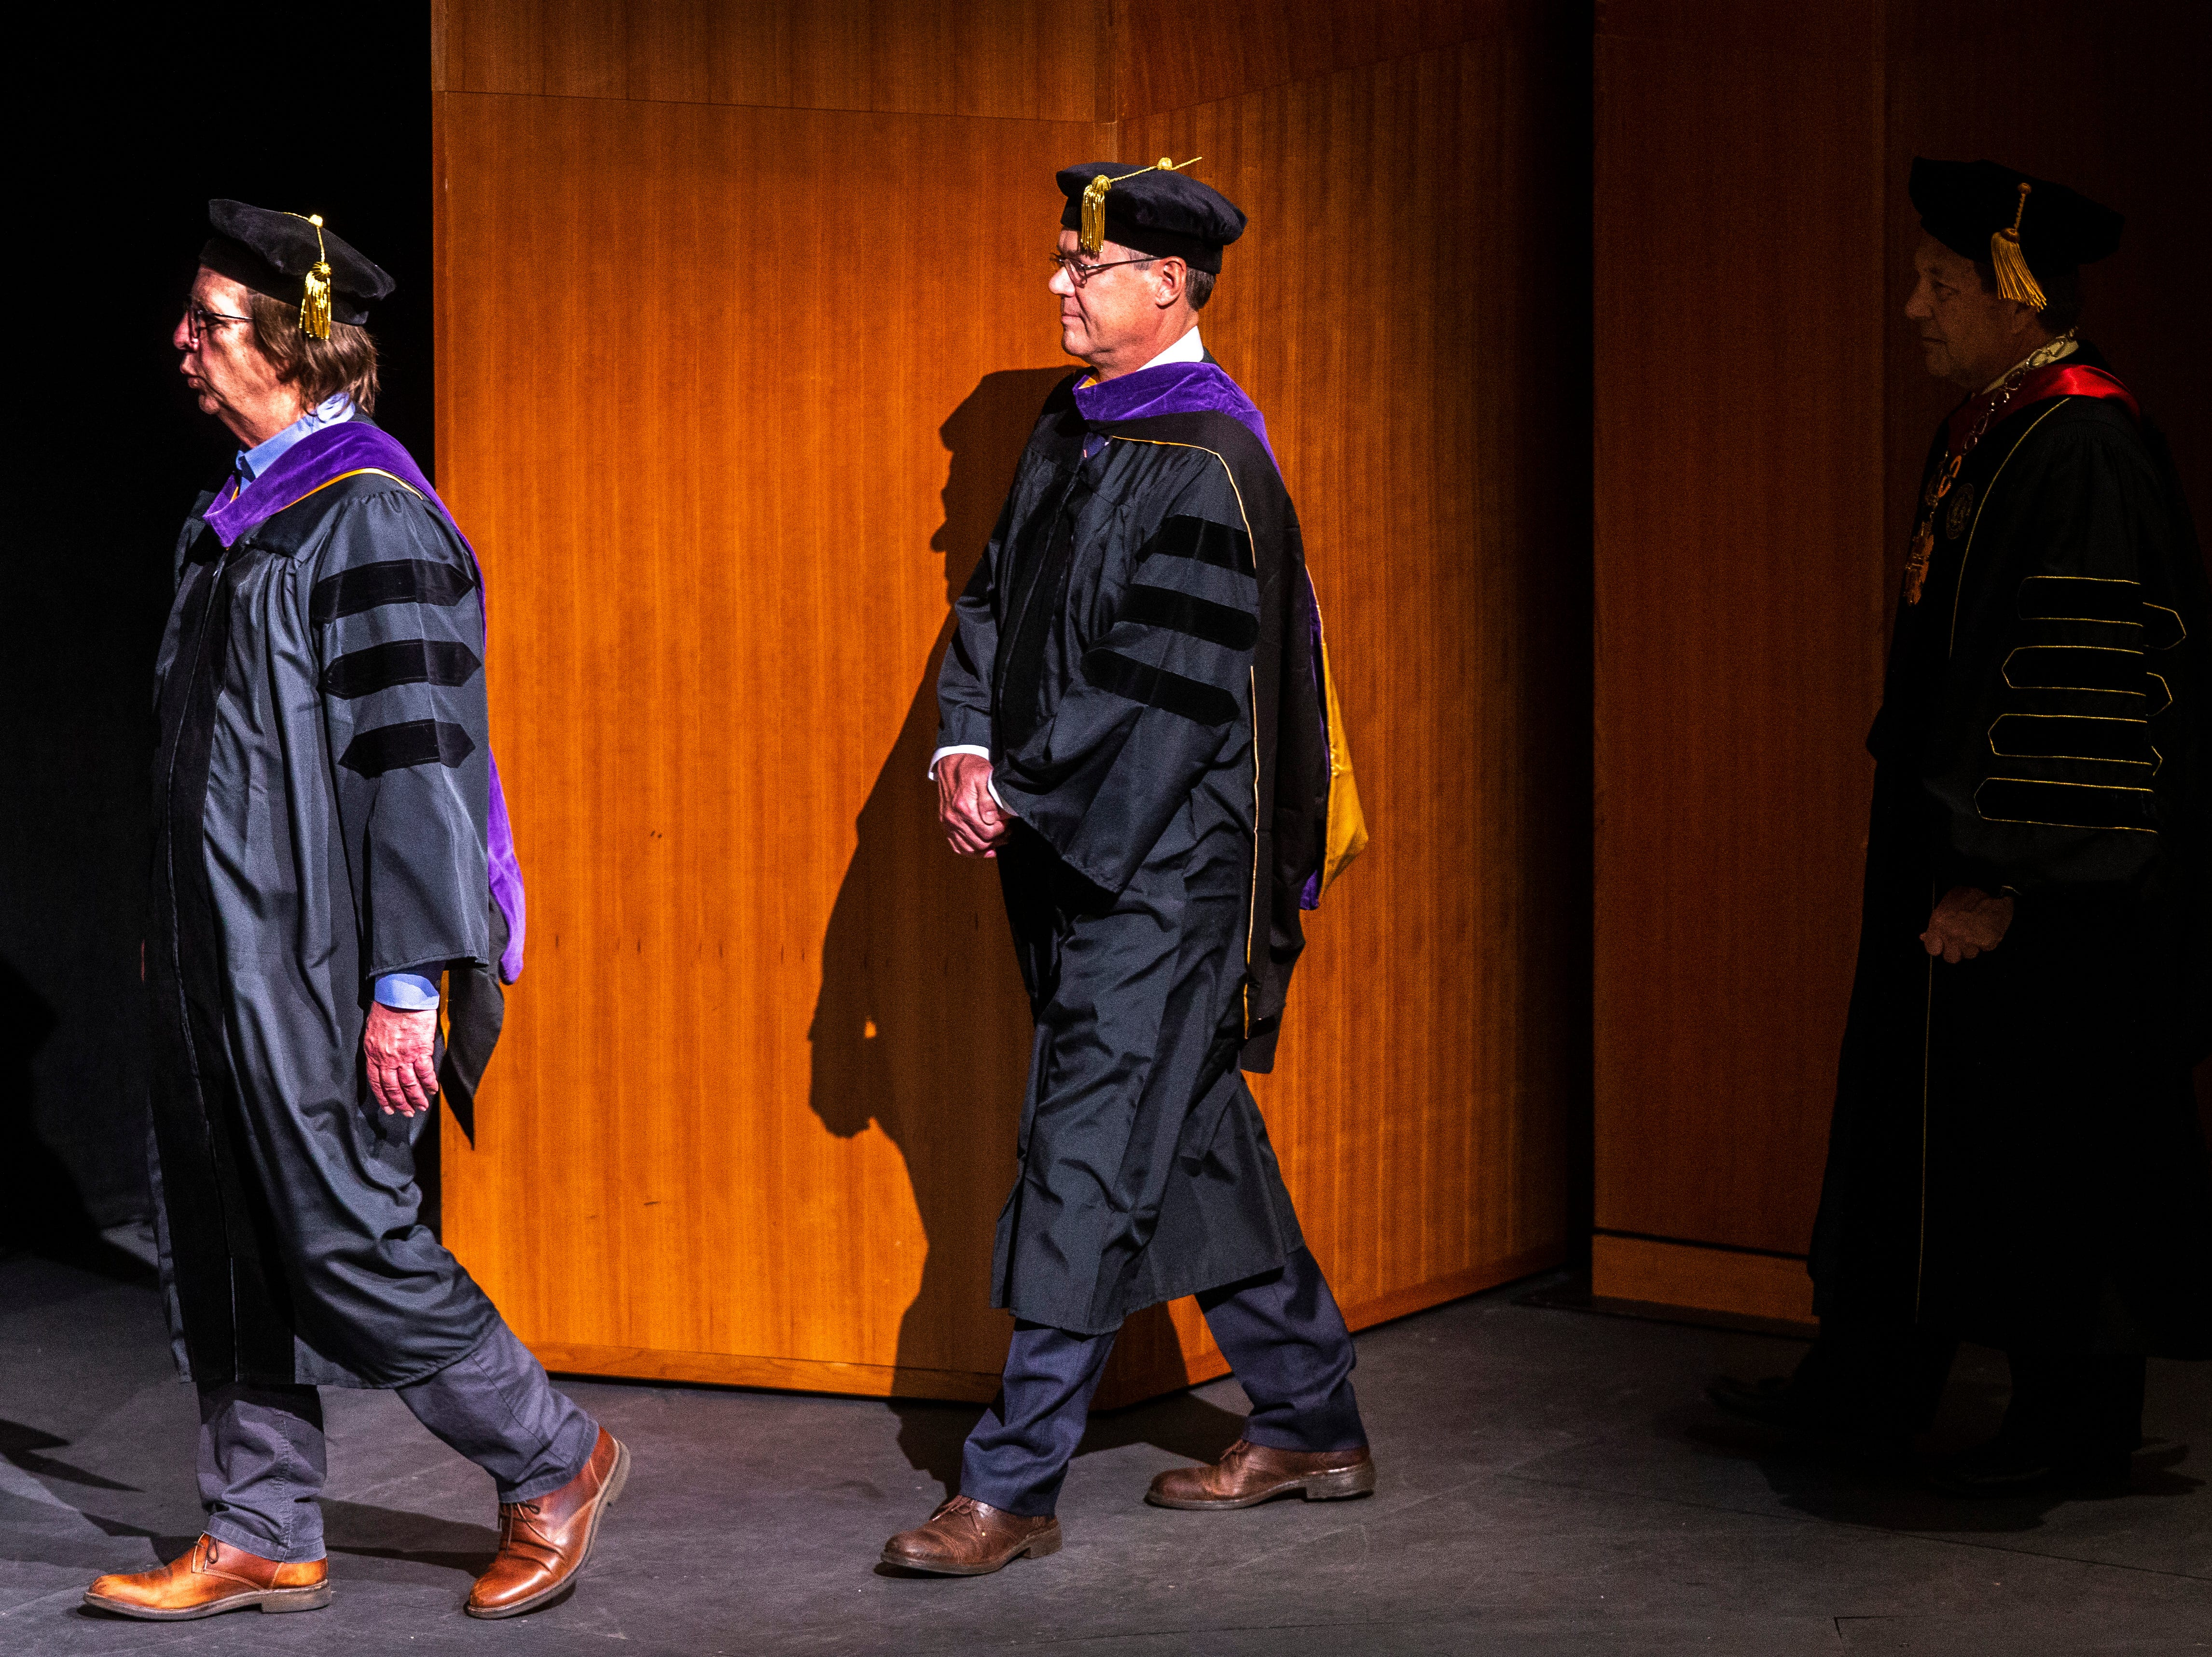 Joel H. Bolger, the Alaska Supreme Court Chief Justice and 1978 University of Iowa Law School graduate, center, walks on stage during the College of Law commencement ceremony, Friday, May 10, 2019, at Hancher Auditorium on the University of Iowa campus in Iowa City, Iowa.